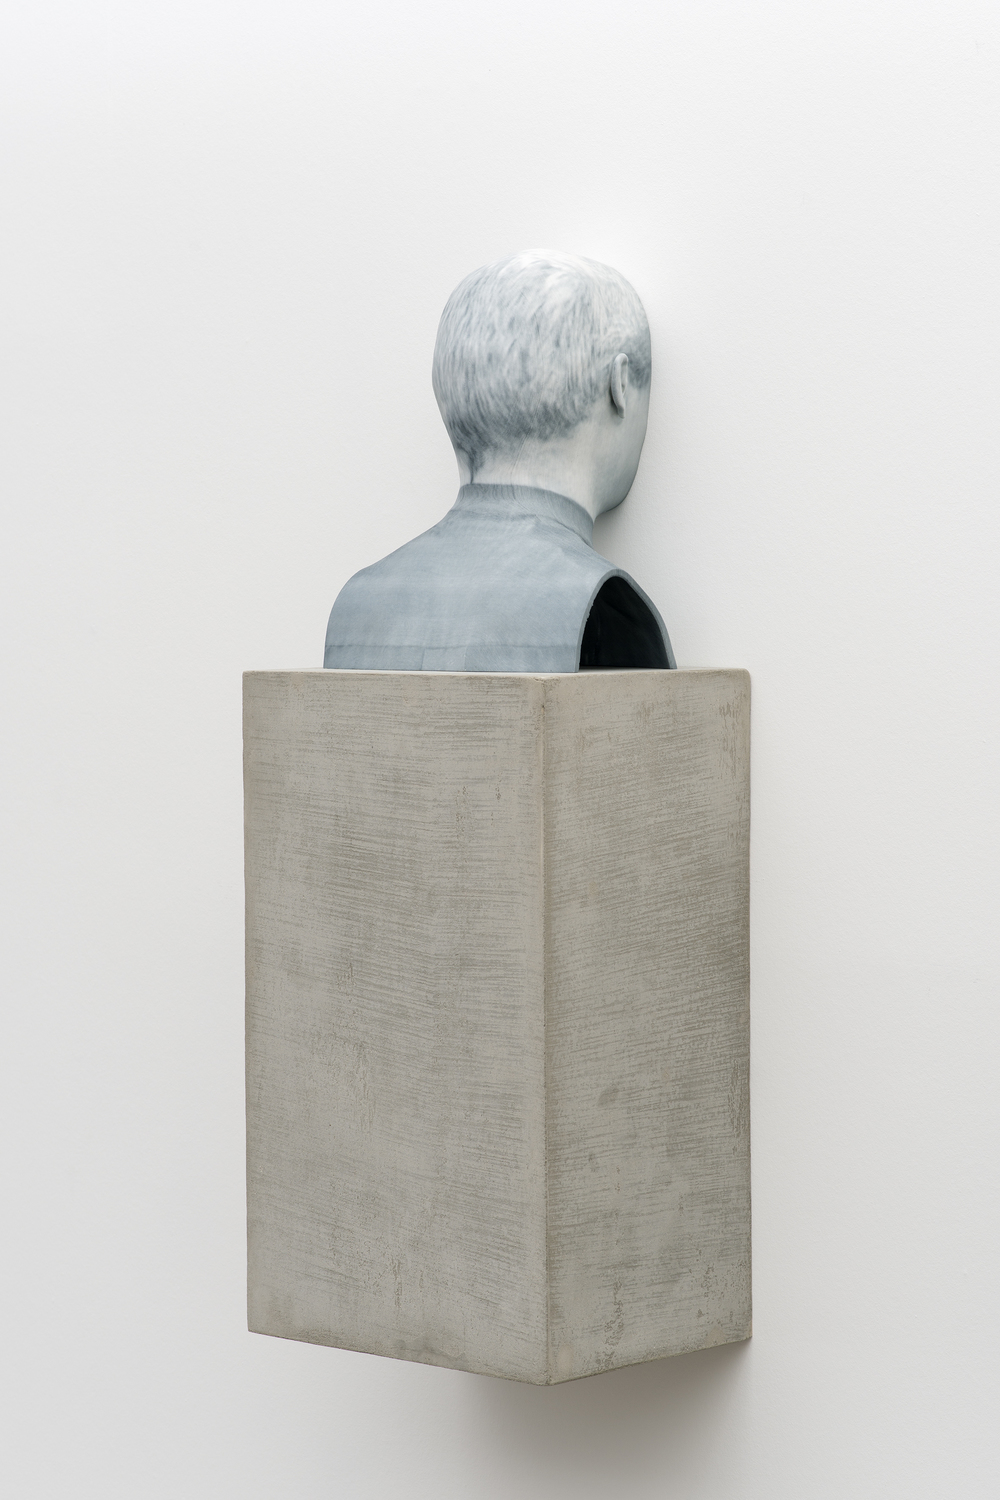 Man of Words (1)   2014   Pigmented plaster ZPrint, concrete    32.25 x 12 x 9 inches